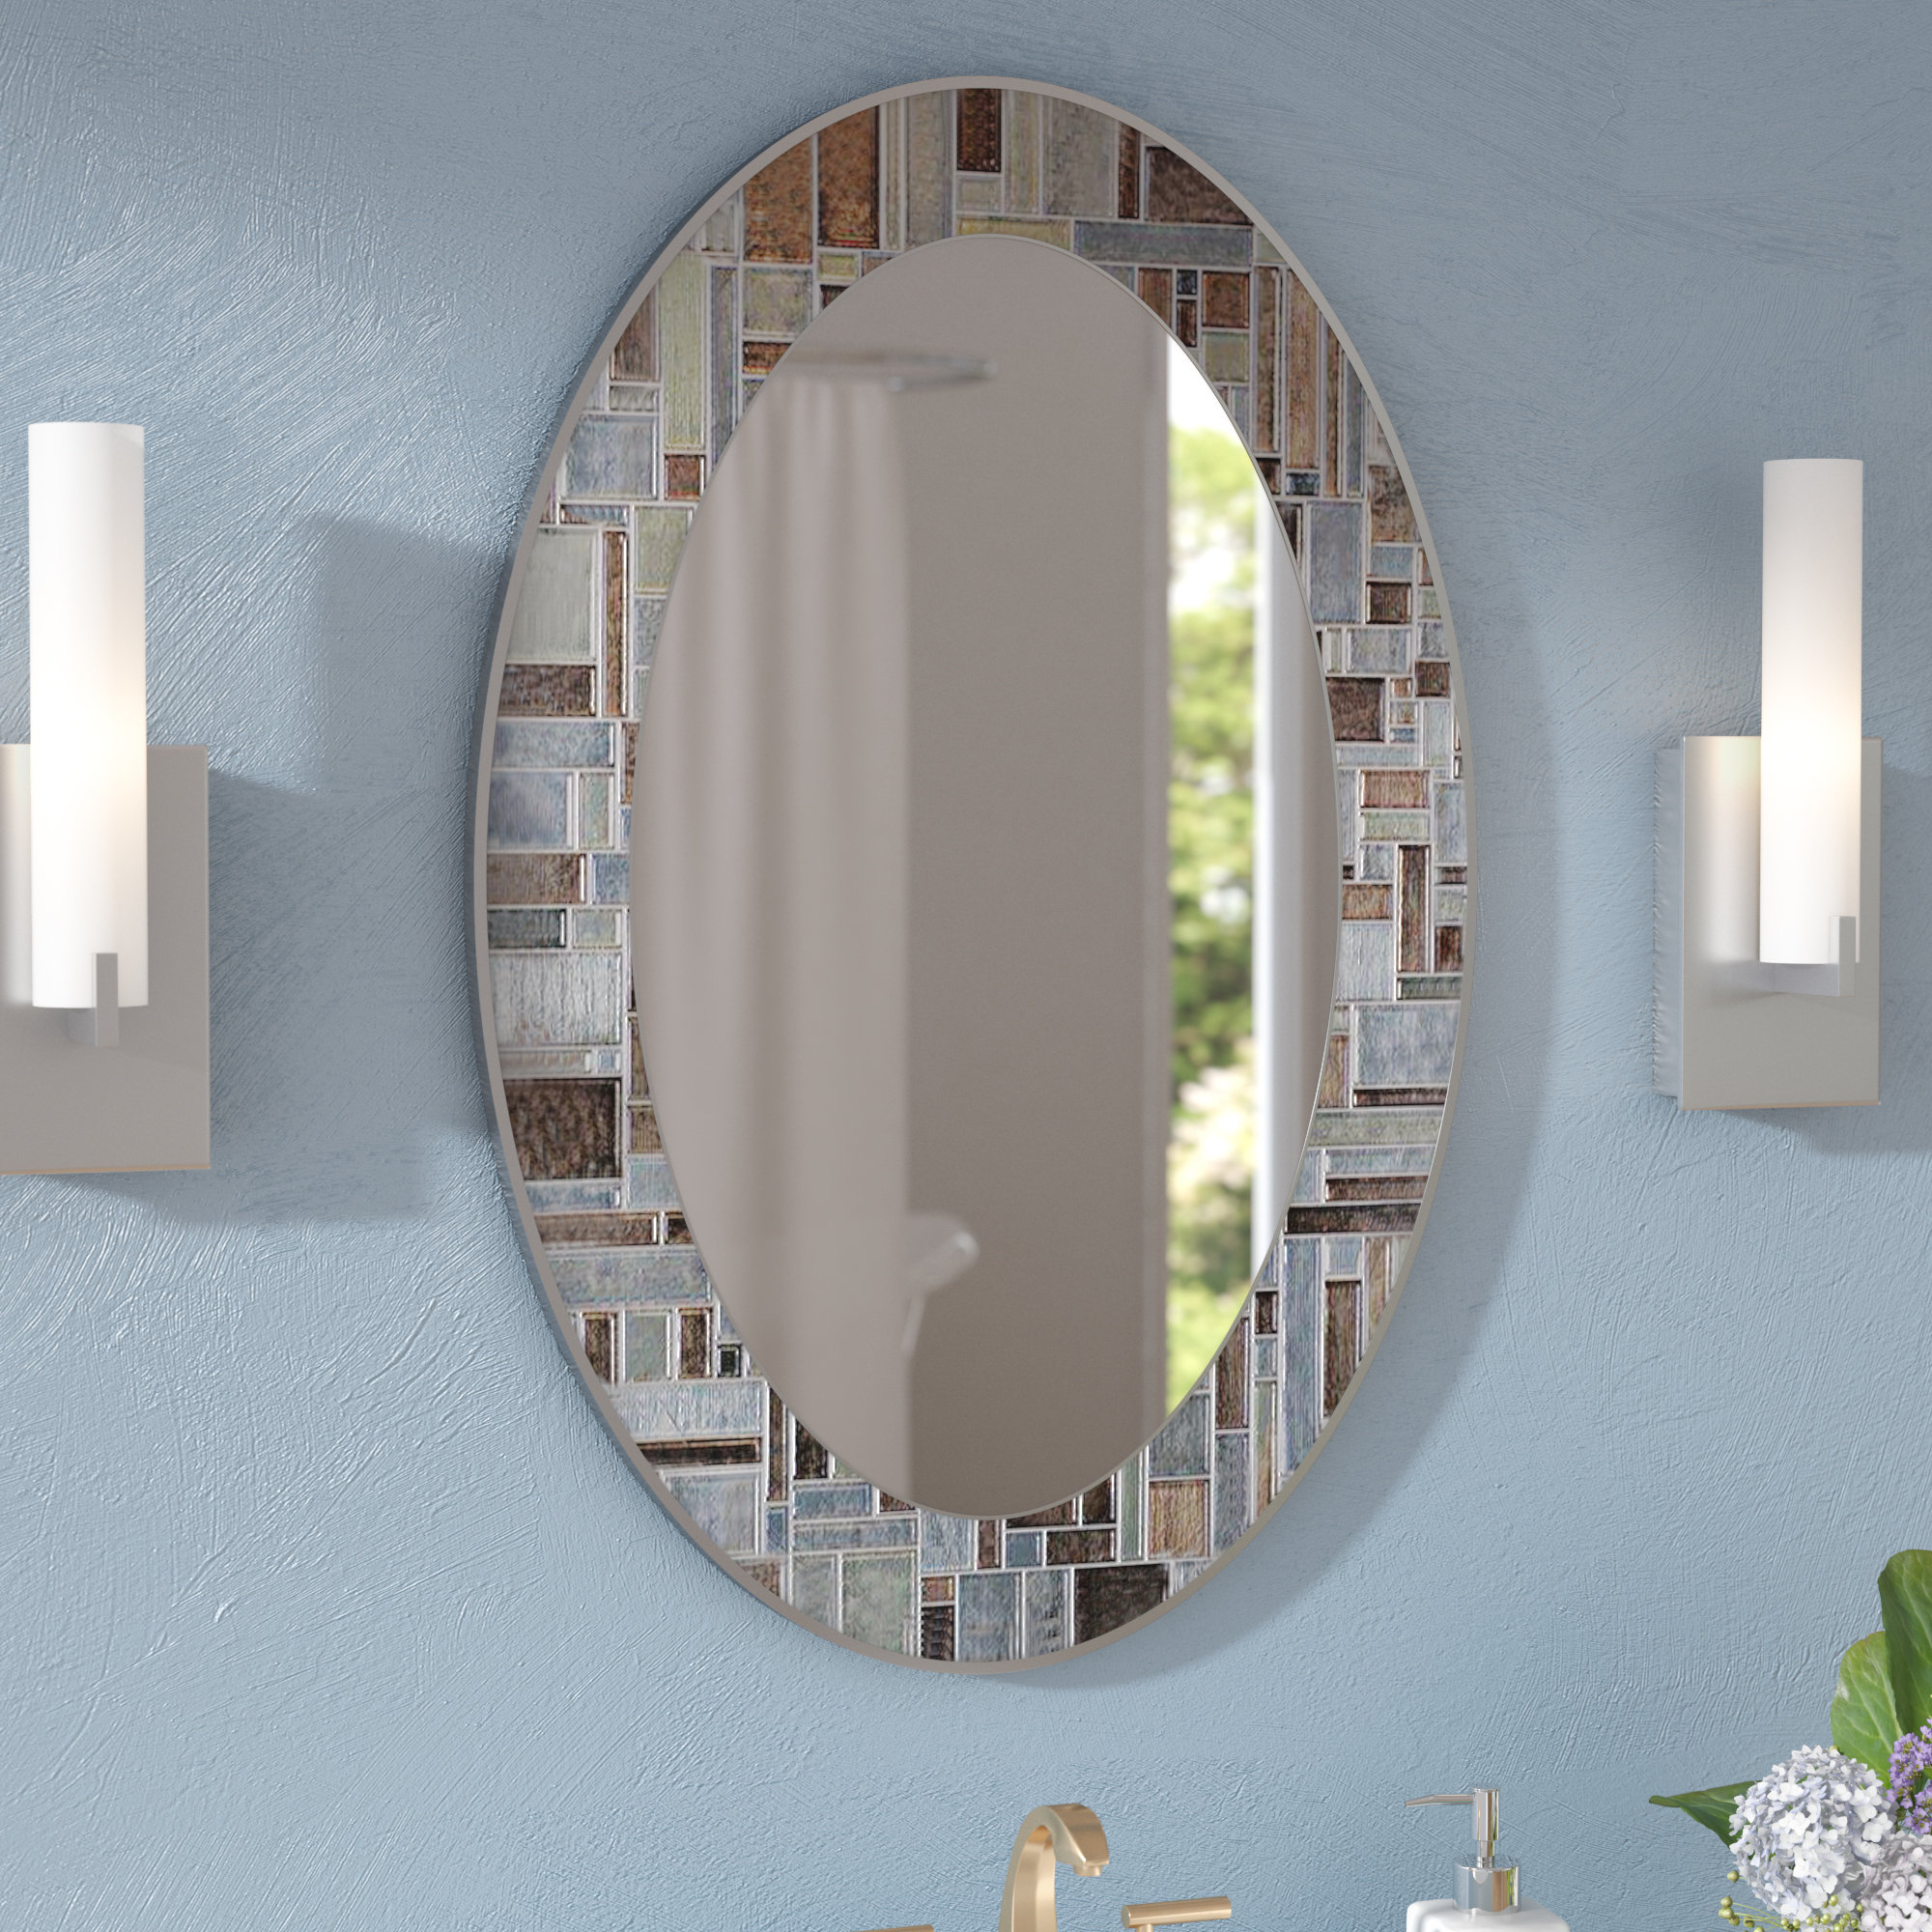 Hussain Oval Deep Engravings Accent Wall Mirror For Hussain Tile Accent Wall Mirrors (Image 12 of 20)